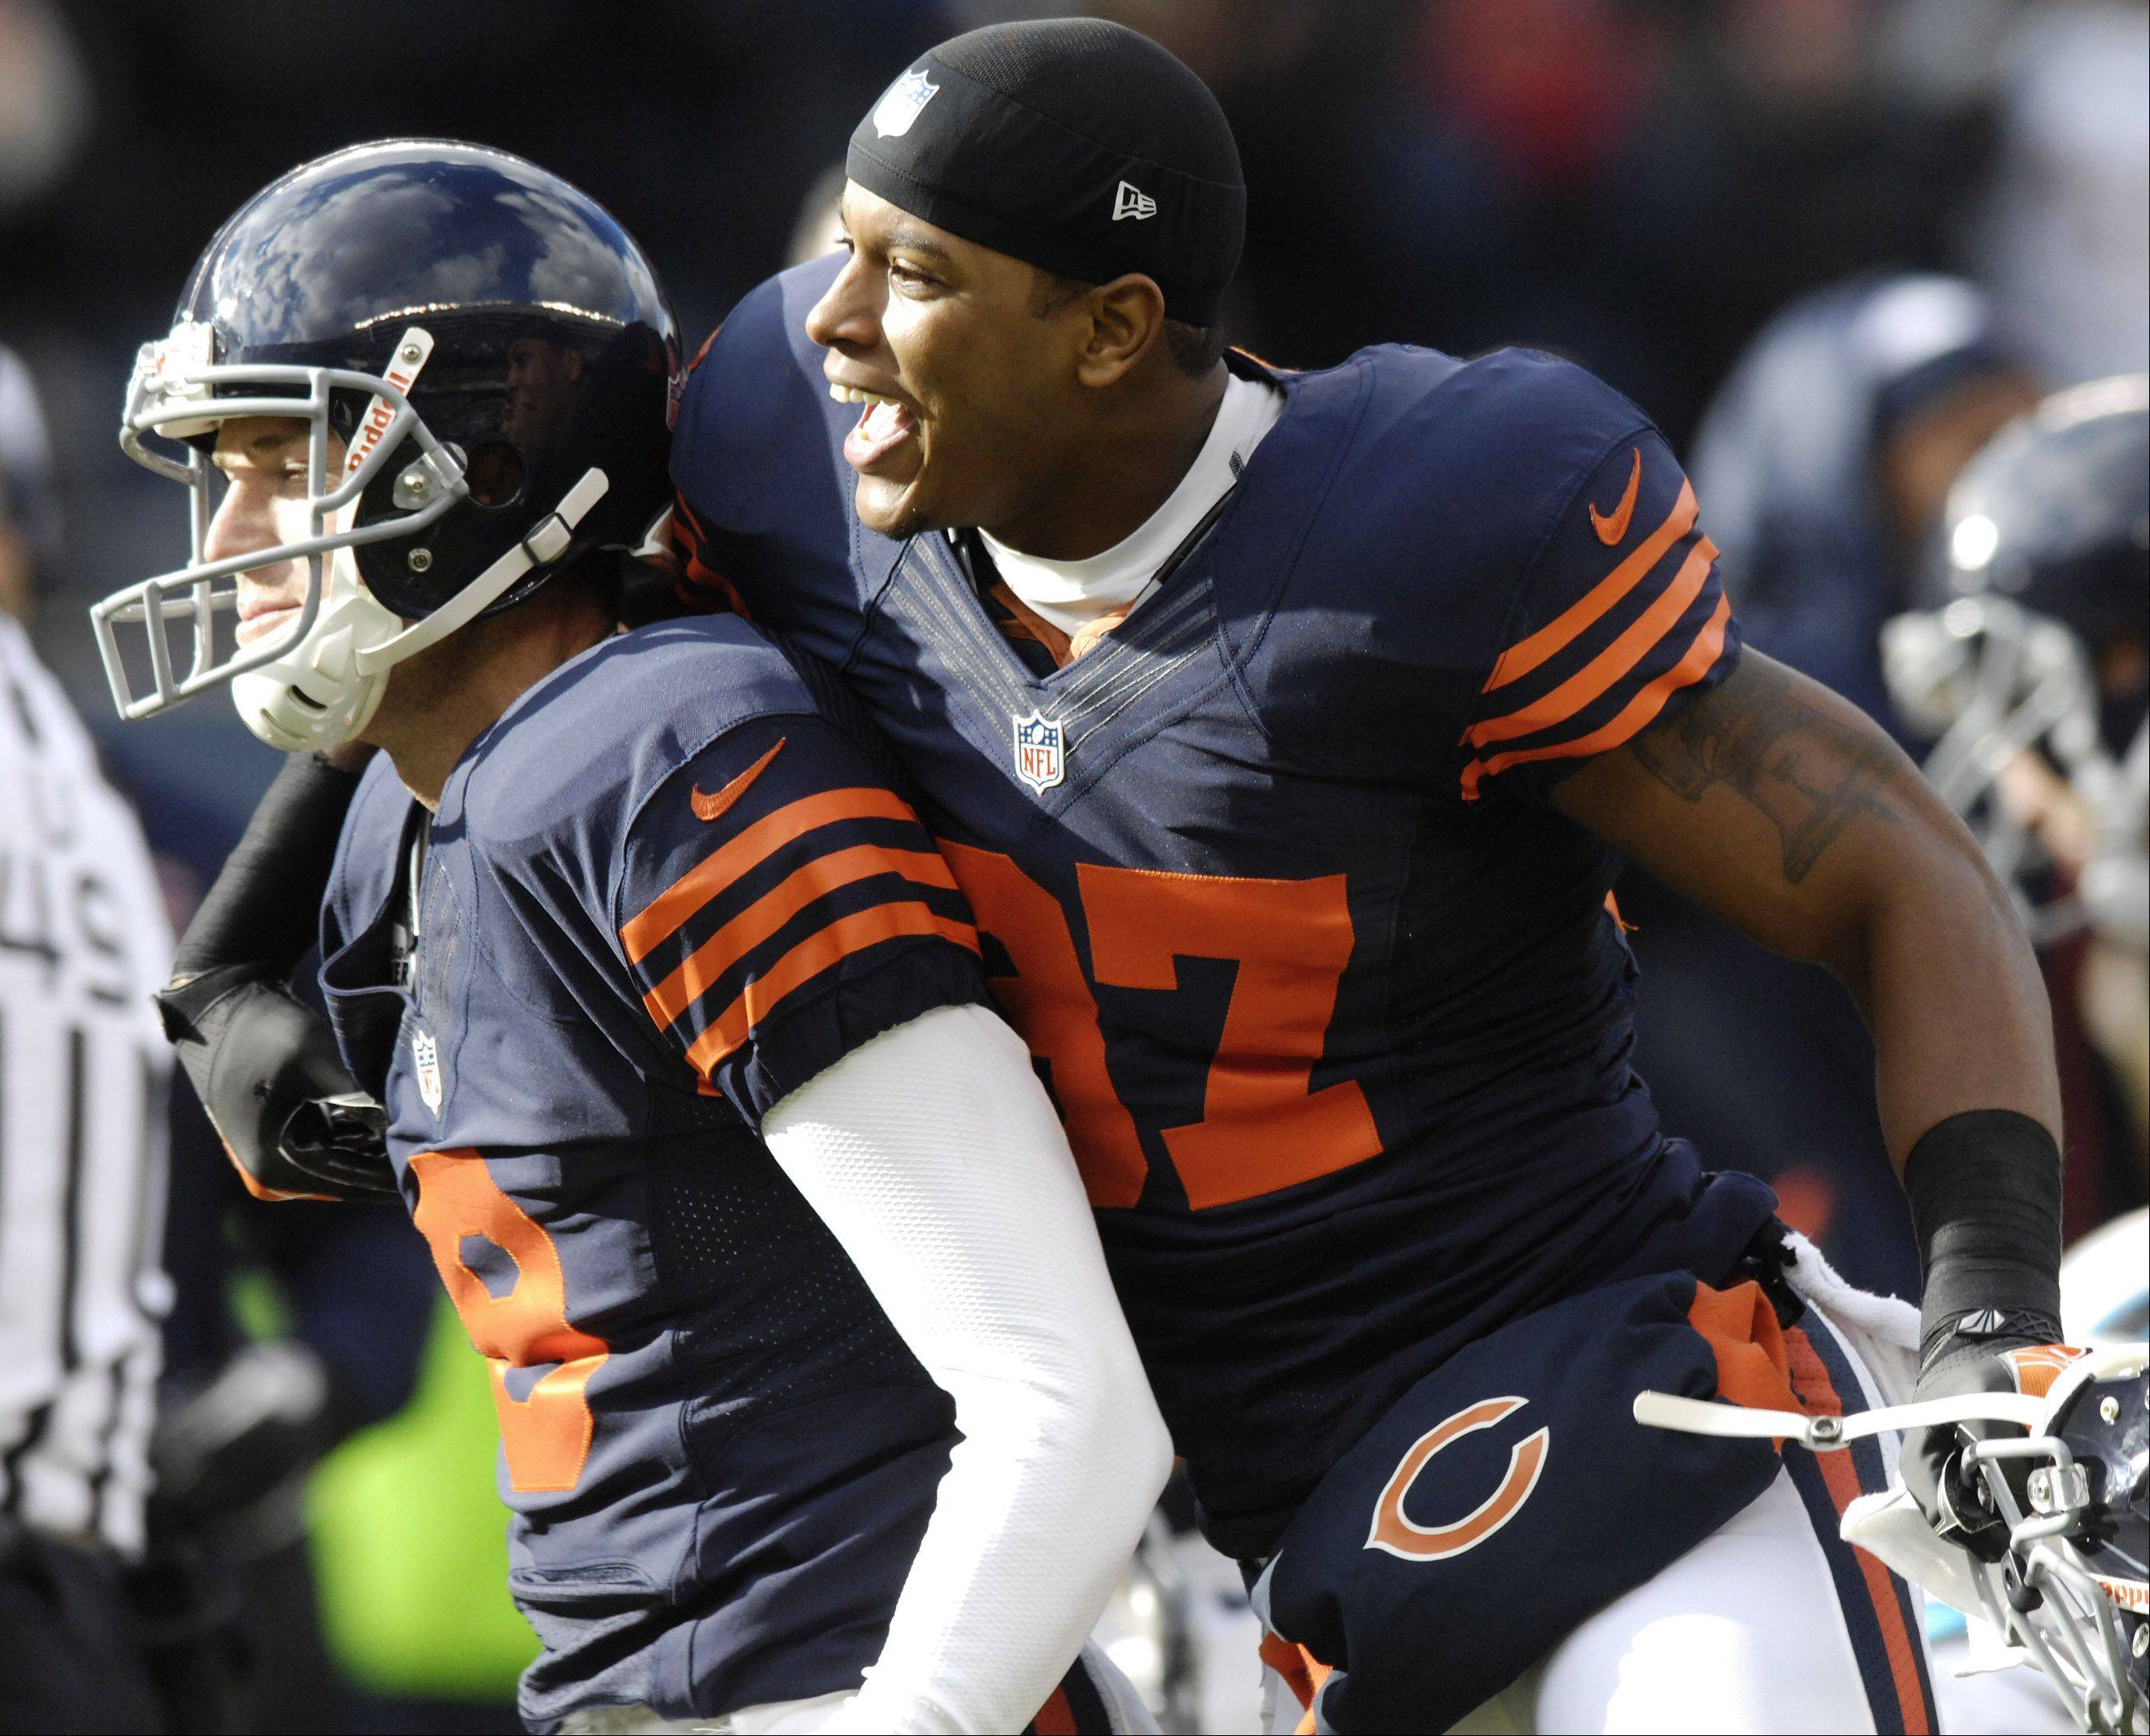 Chicago Bears free safety Anthony Walters, right, celebrates Chicago Bears kicker Robbie Gould's game-winning field goal during Sunday's game at Soldier Field.